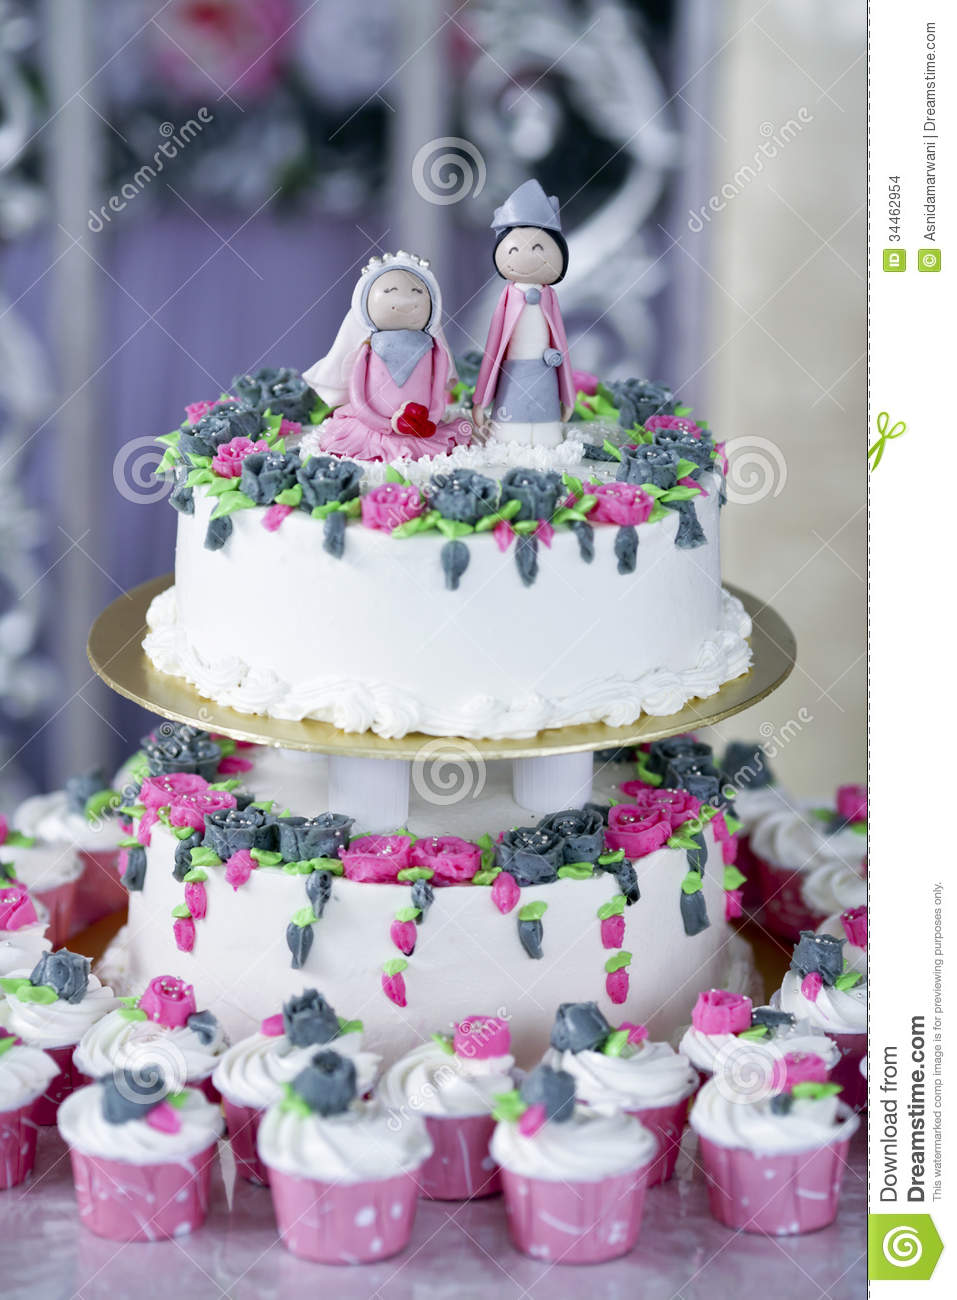 Wedding Cake Stock Photo Image Of Cake Bakery Love